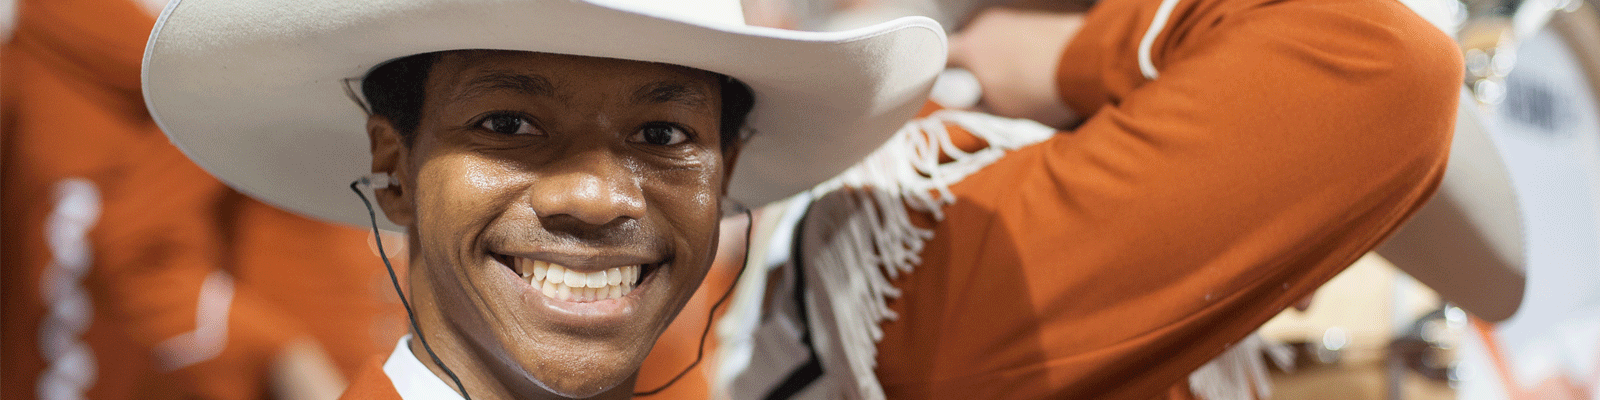 Closeup of Longhorn Band student smiling